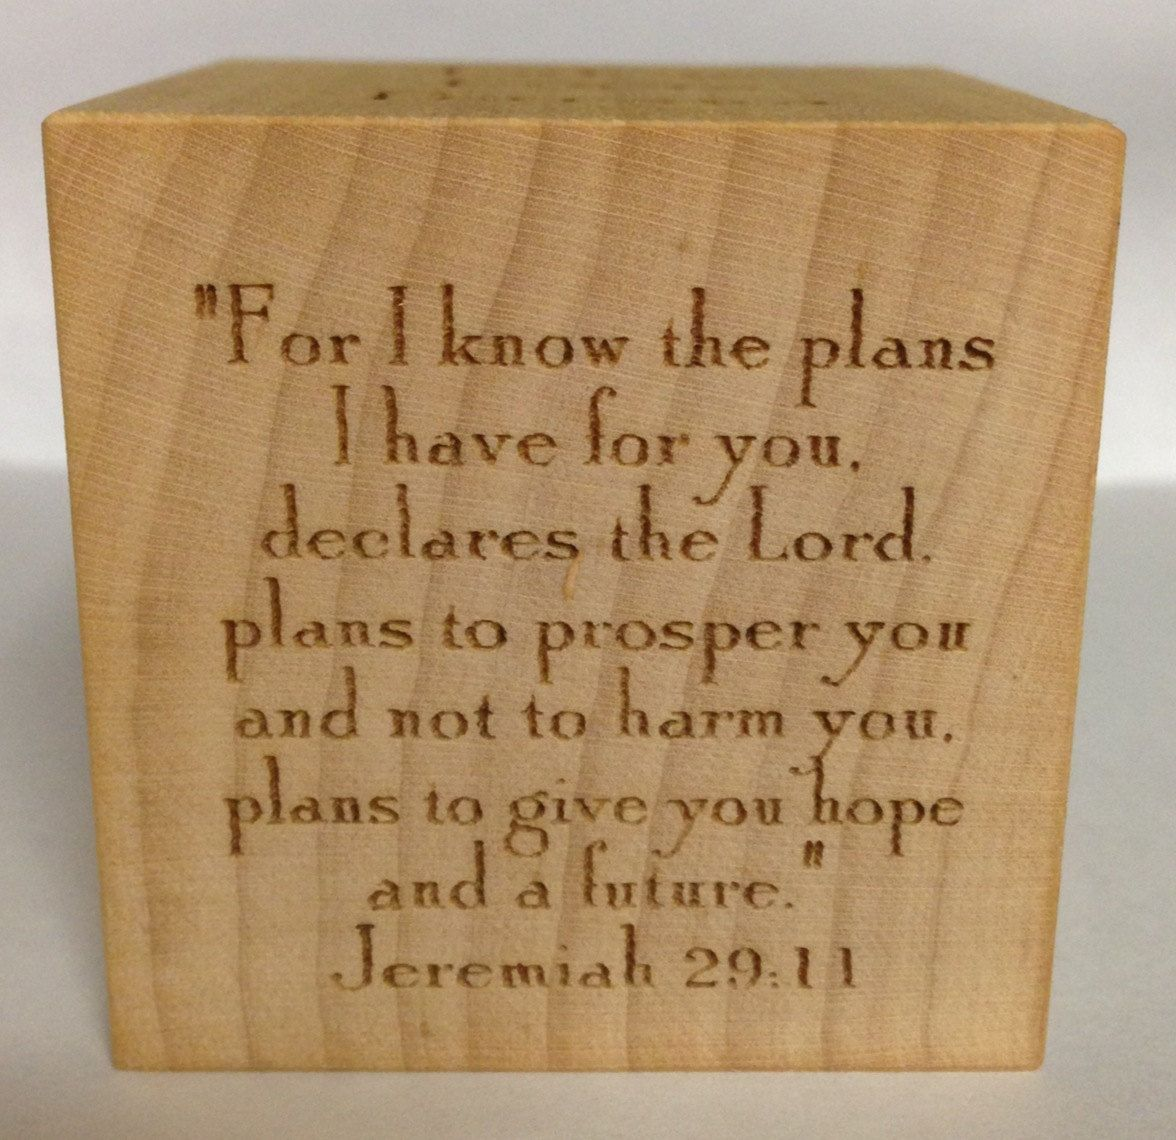 Personalized baptism block engraved wooden block dedication gift personalized baptism block engraved wooden block dedication gift christening gift religious ceremony babys baptism adoption negle Gallery